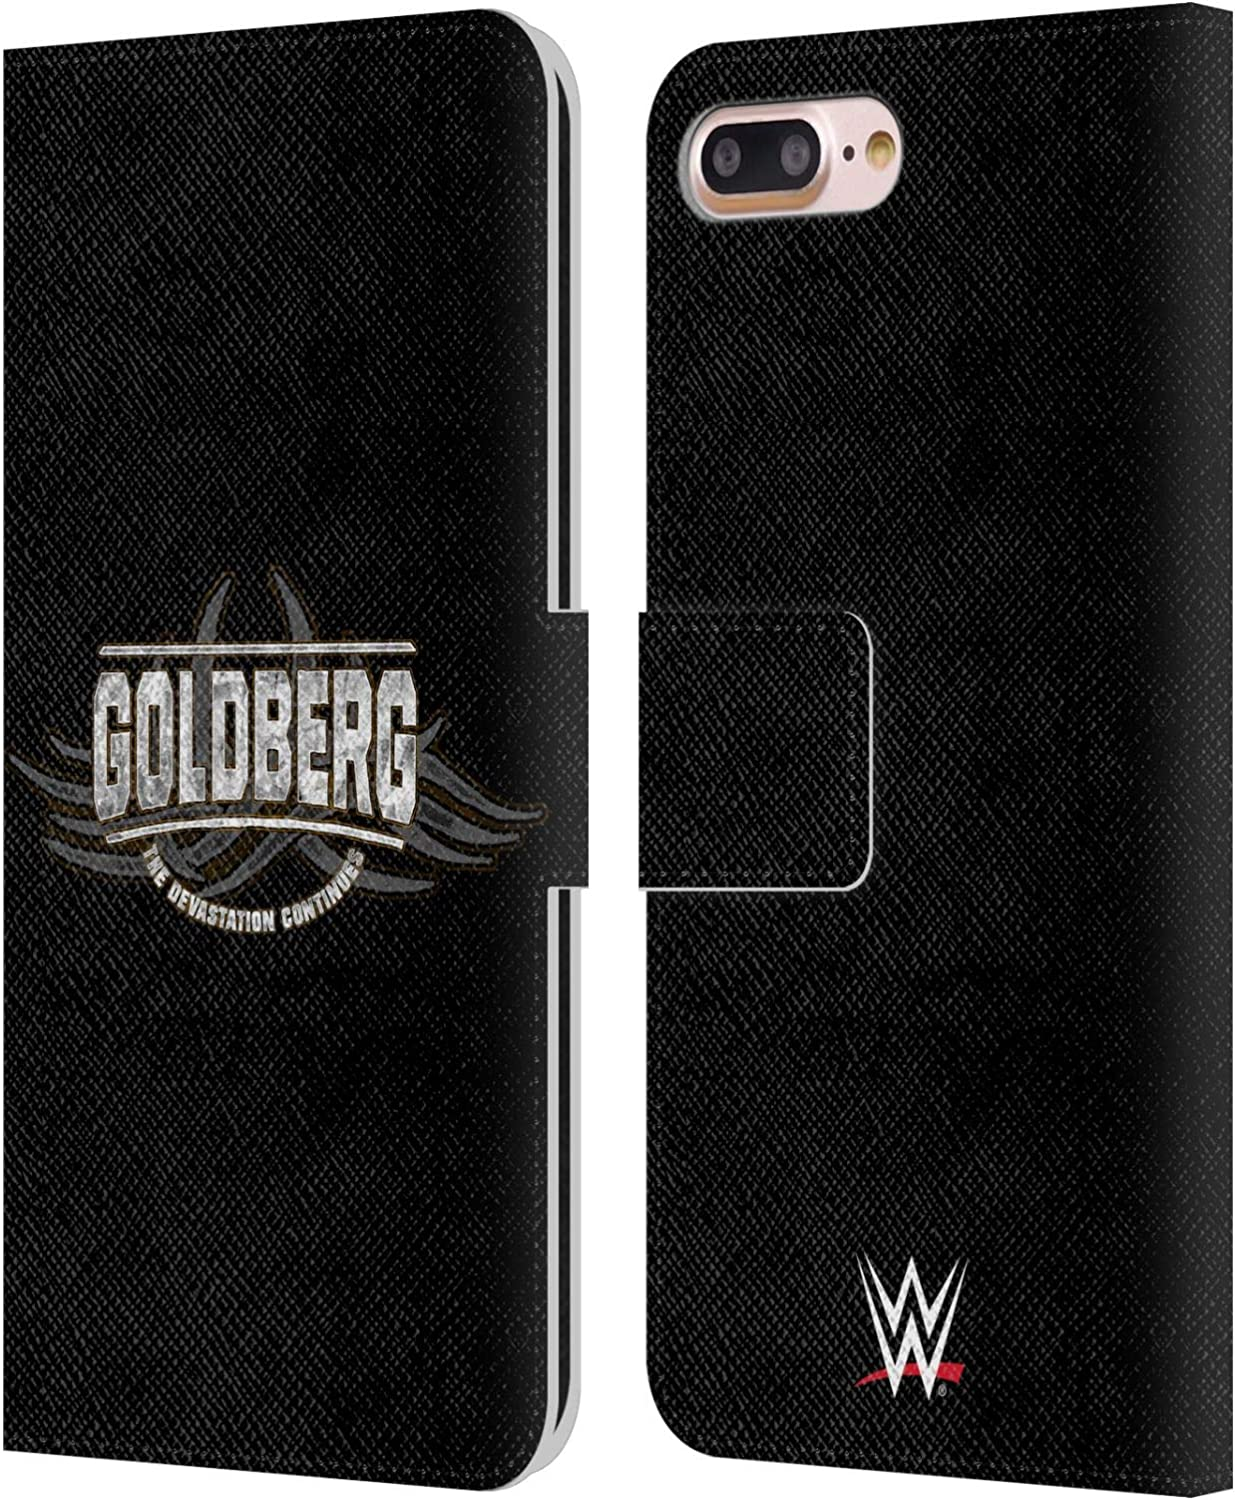 Head Case Designs Officially Licensed WWE The Devastation Continues Goldberg Leather Book Wallet Case Cover Compatible with Apple iPhone 7 Plus/iPhone 8 Plus